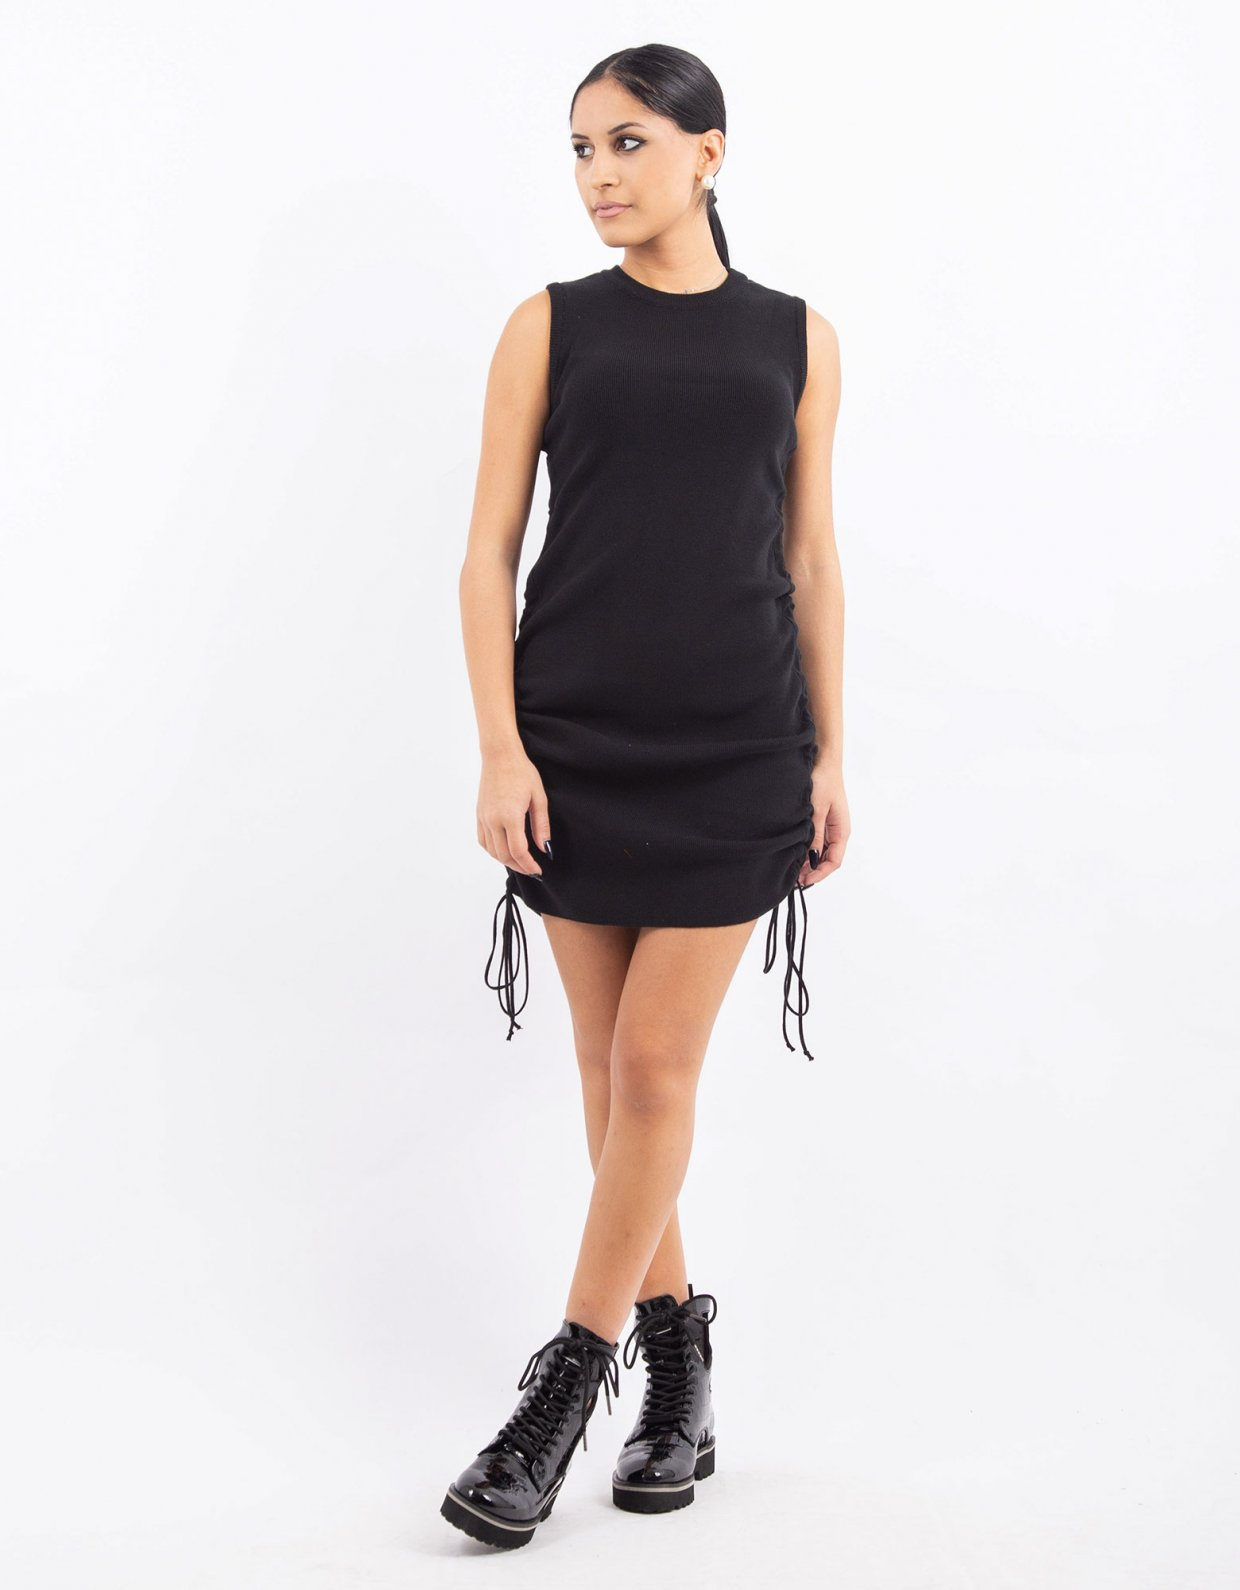 Combos Knitwear Combos W19 – Black tank dress